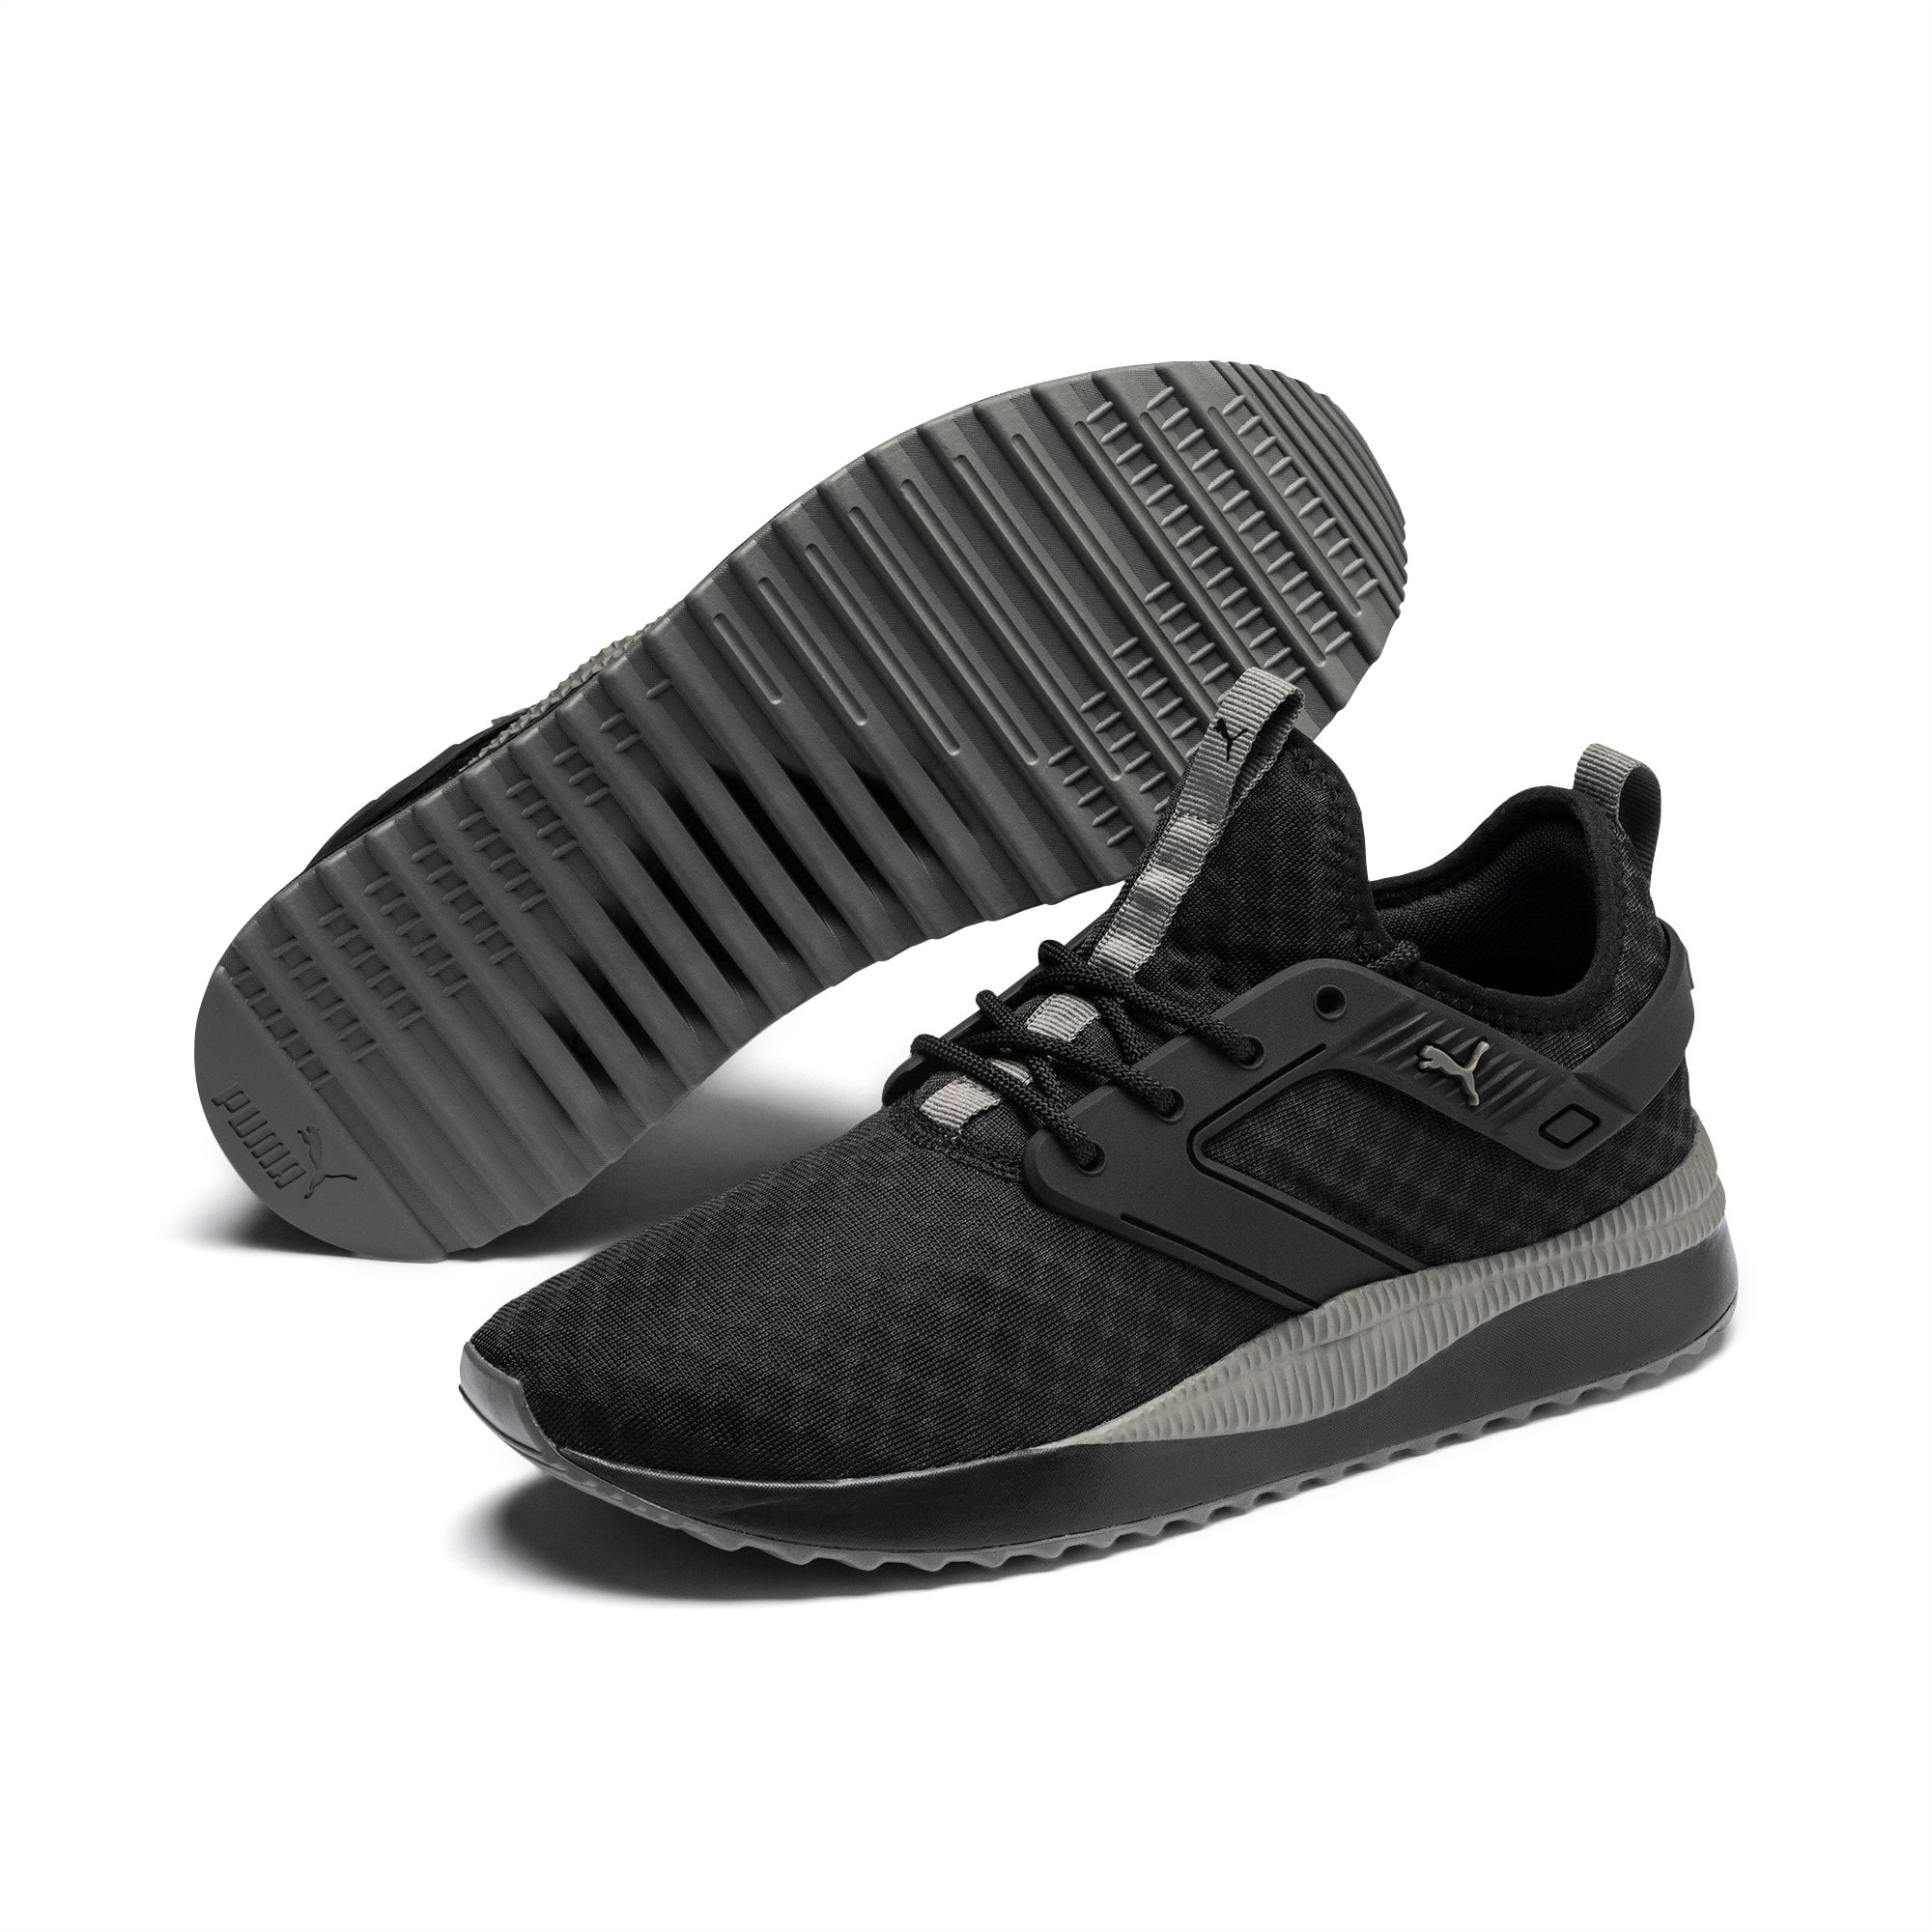 Pacer Next Excel Core Sneakers, Puma Black-Charcoal Gray, extralarge